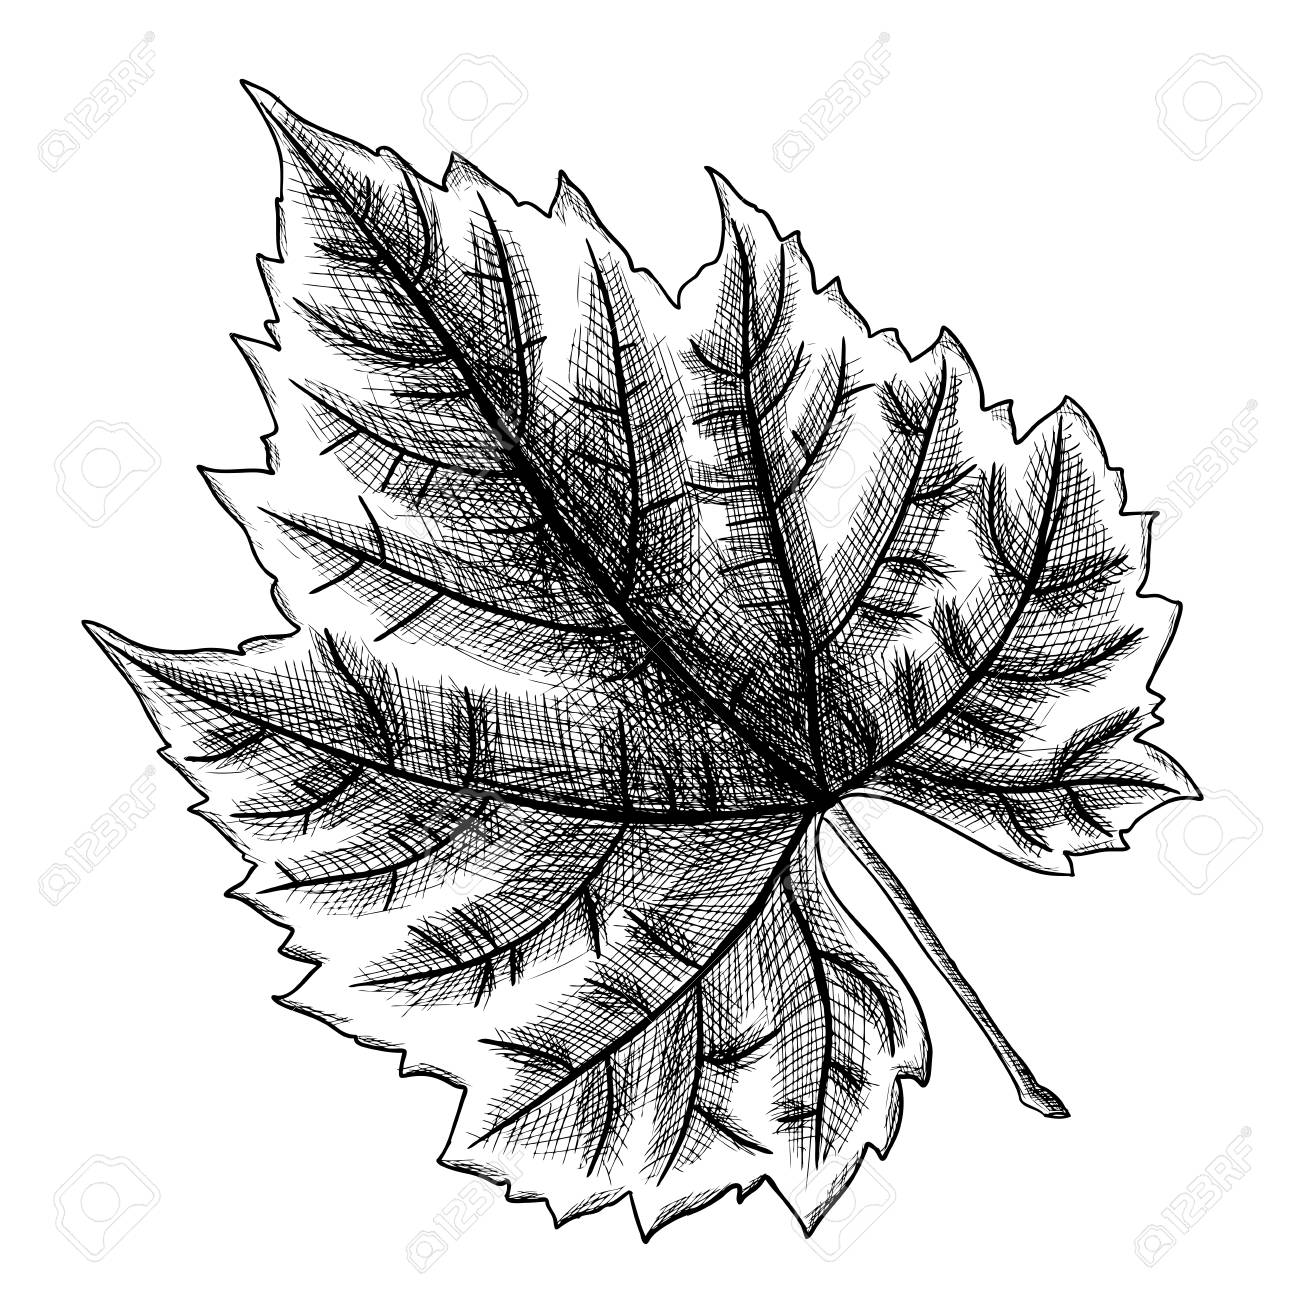 1300x1300 Detailed And Precisek Drawing Of Grape Leaf. Hand Drawn